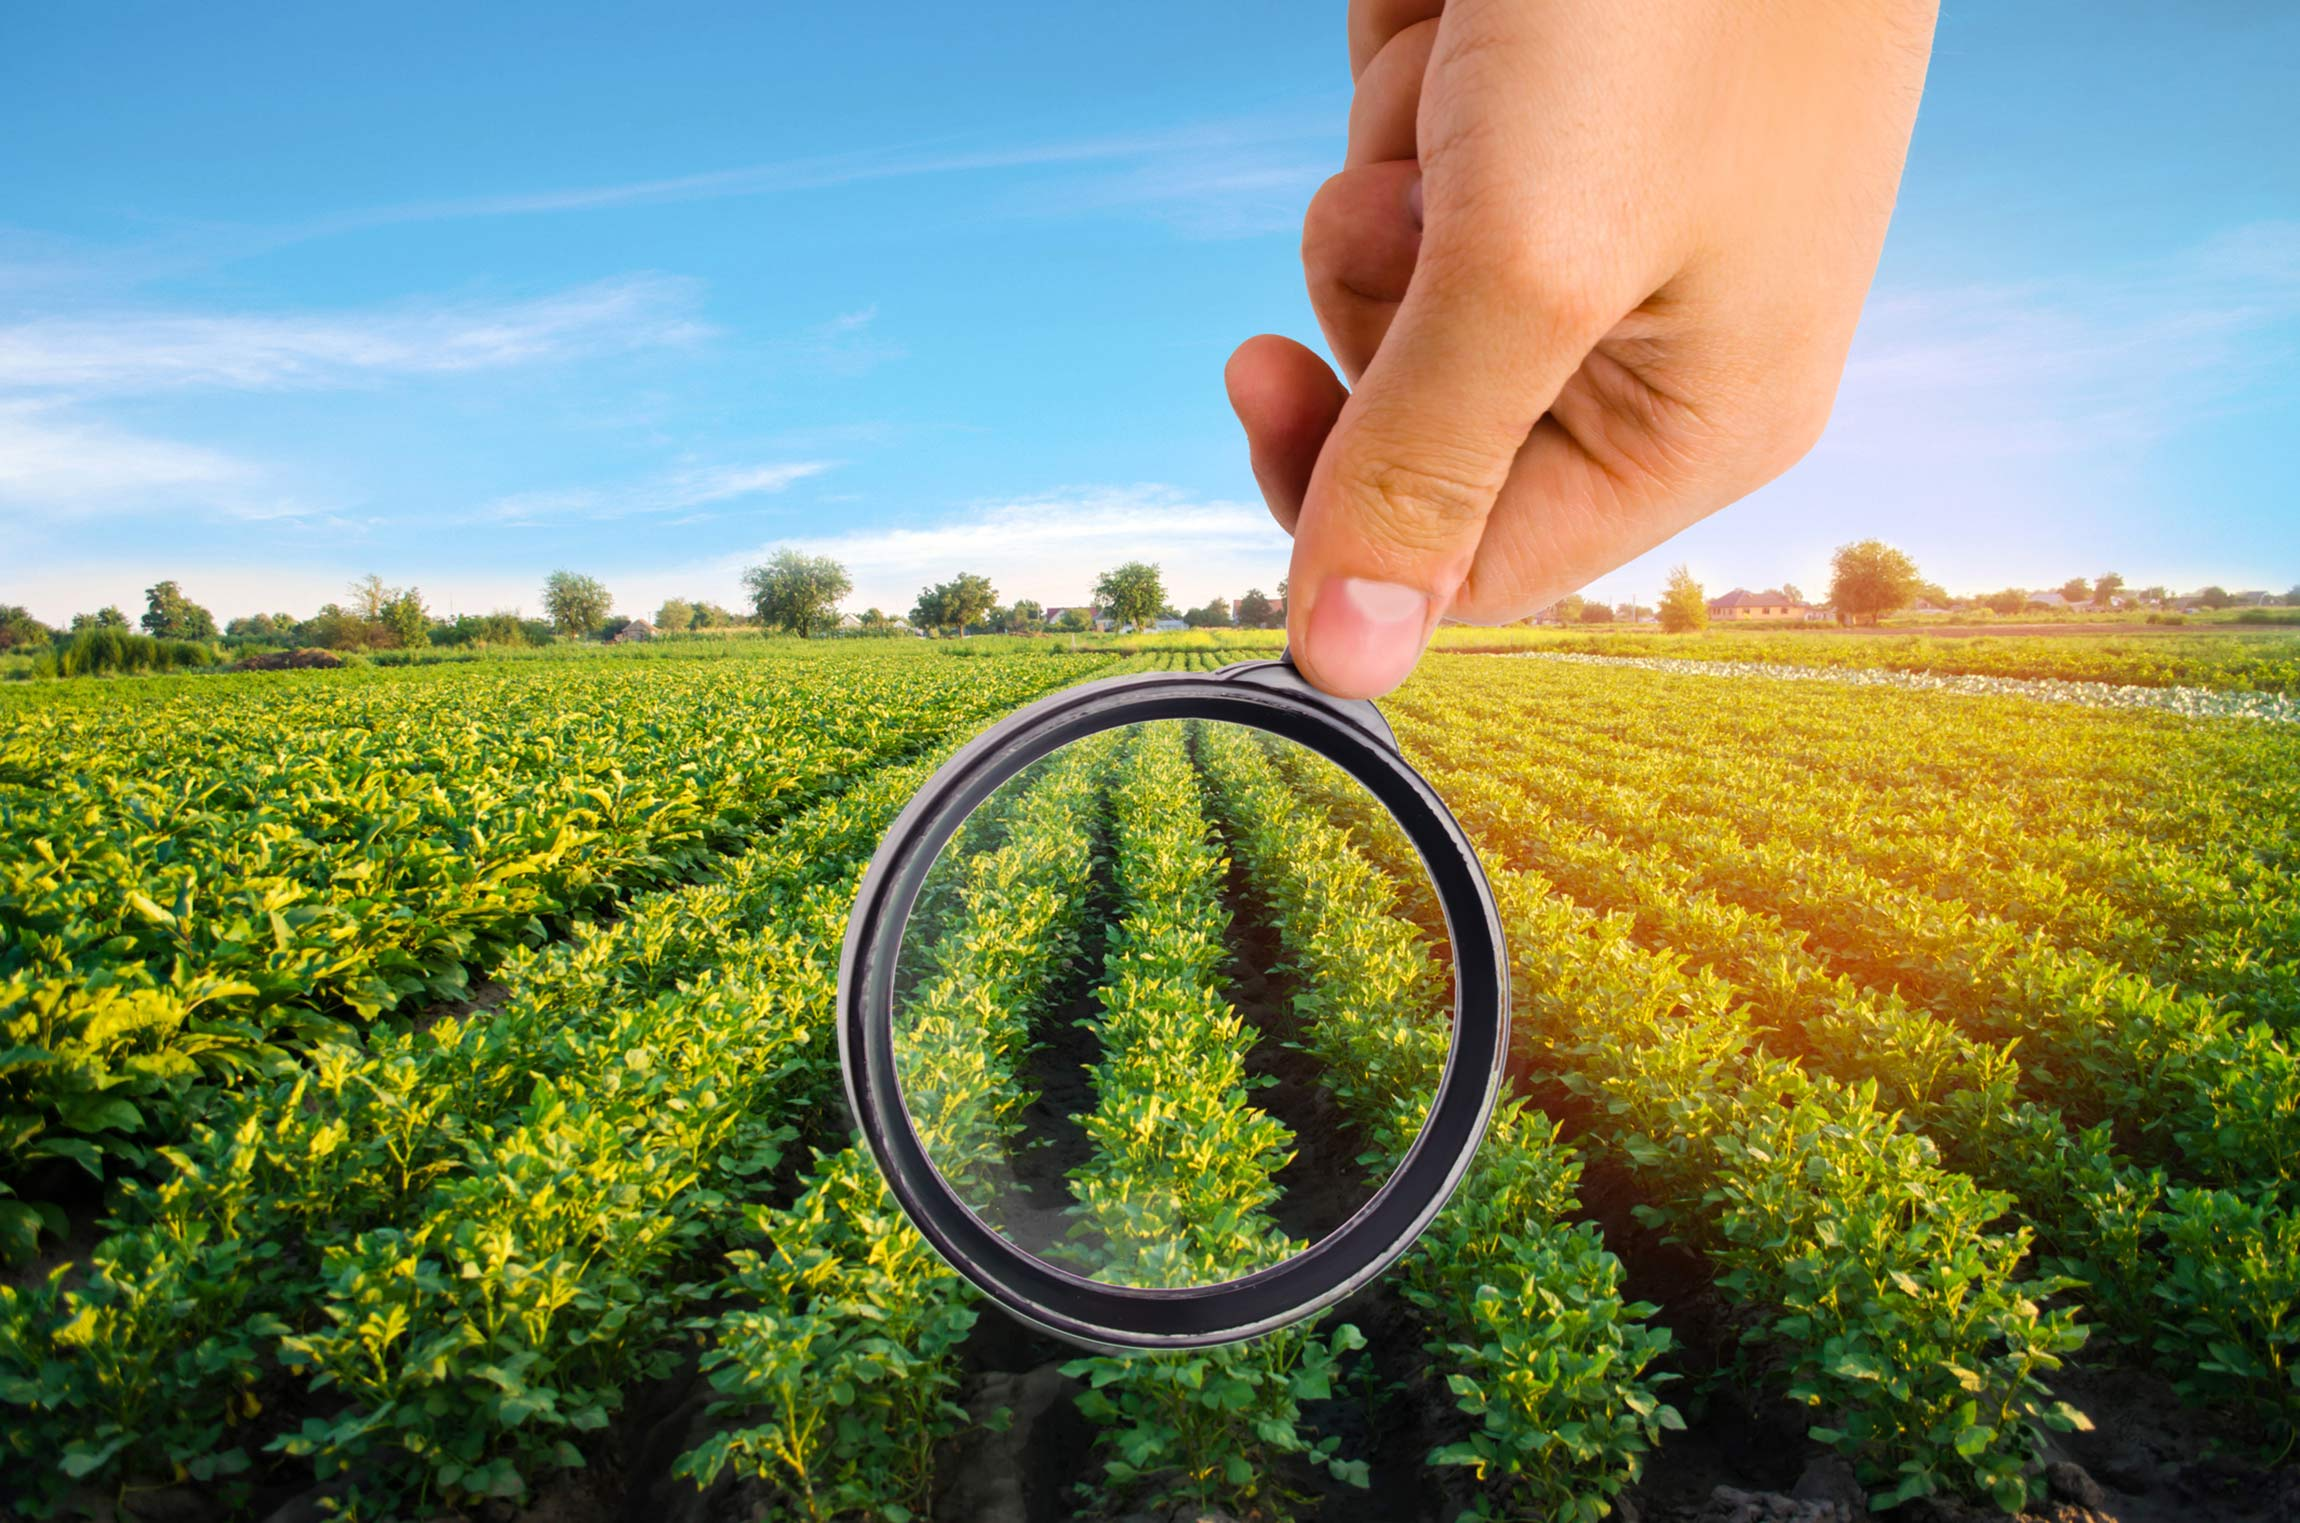 Magnifying glass over crops